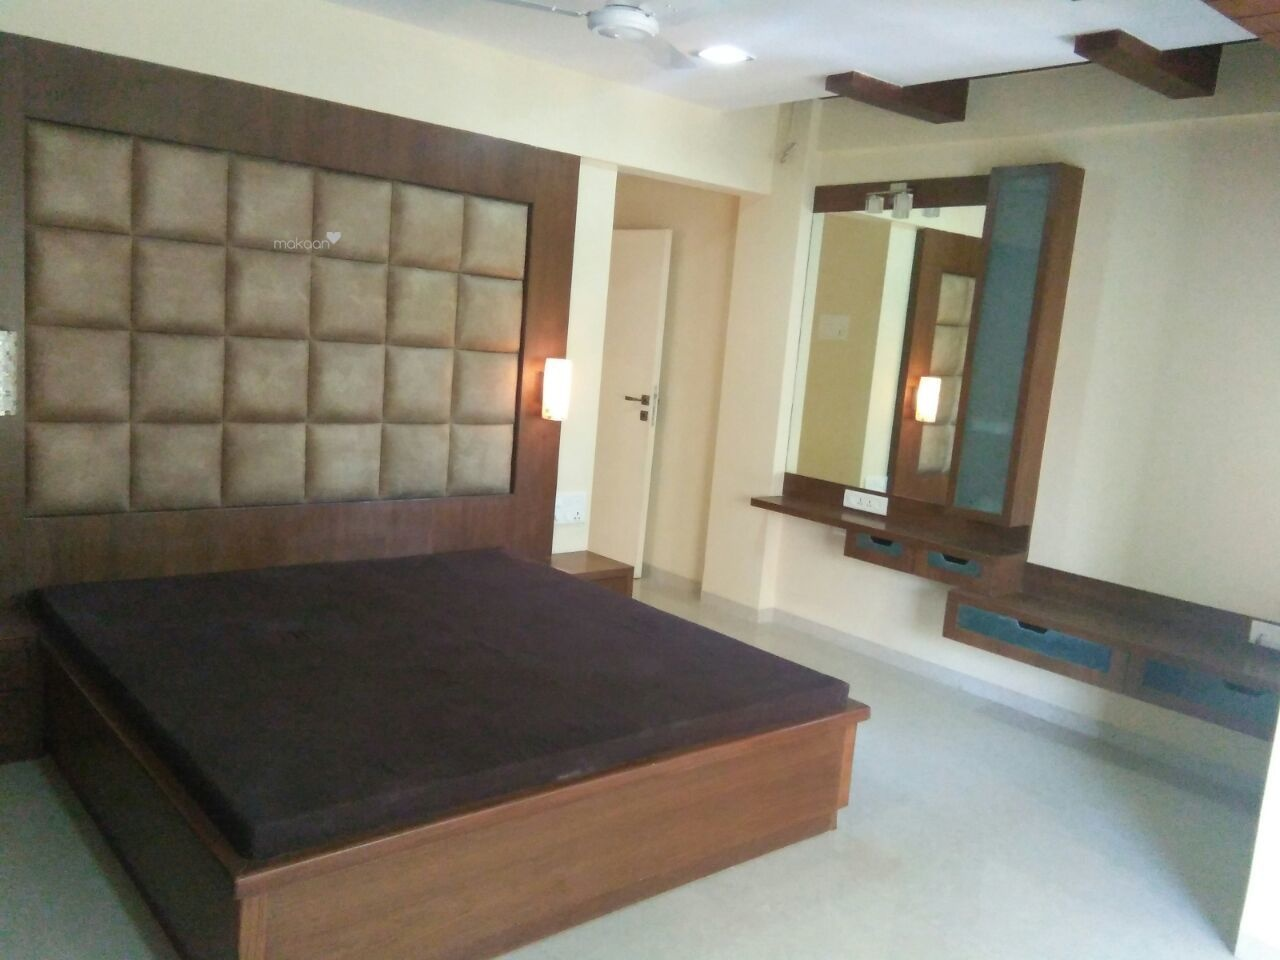 1800 sq ft 3BHK 3BHK+3T (1,800 sq ft) + Study Room Property By Global Real Estate Consultants In Project, Bandra West